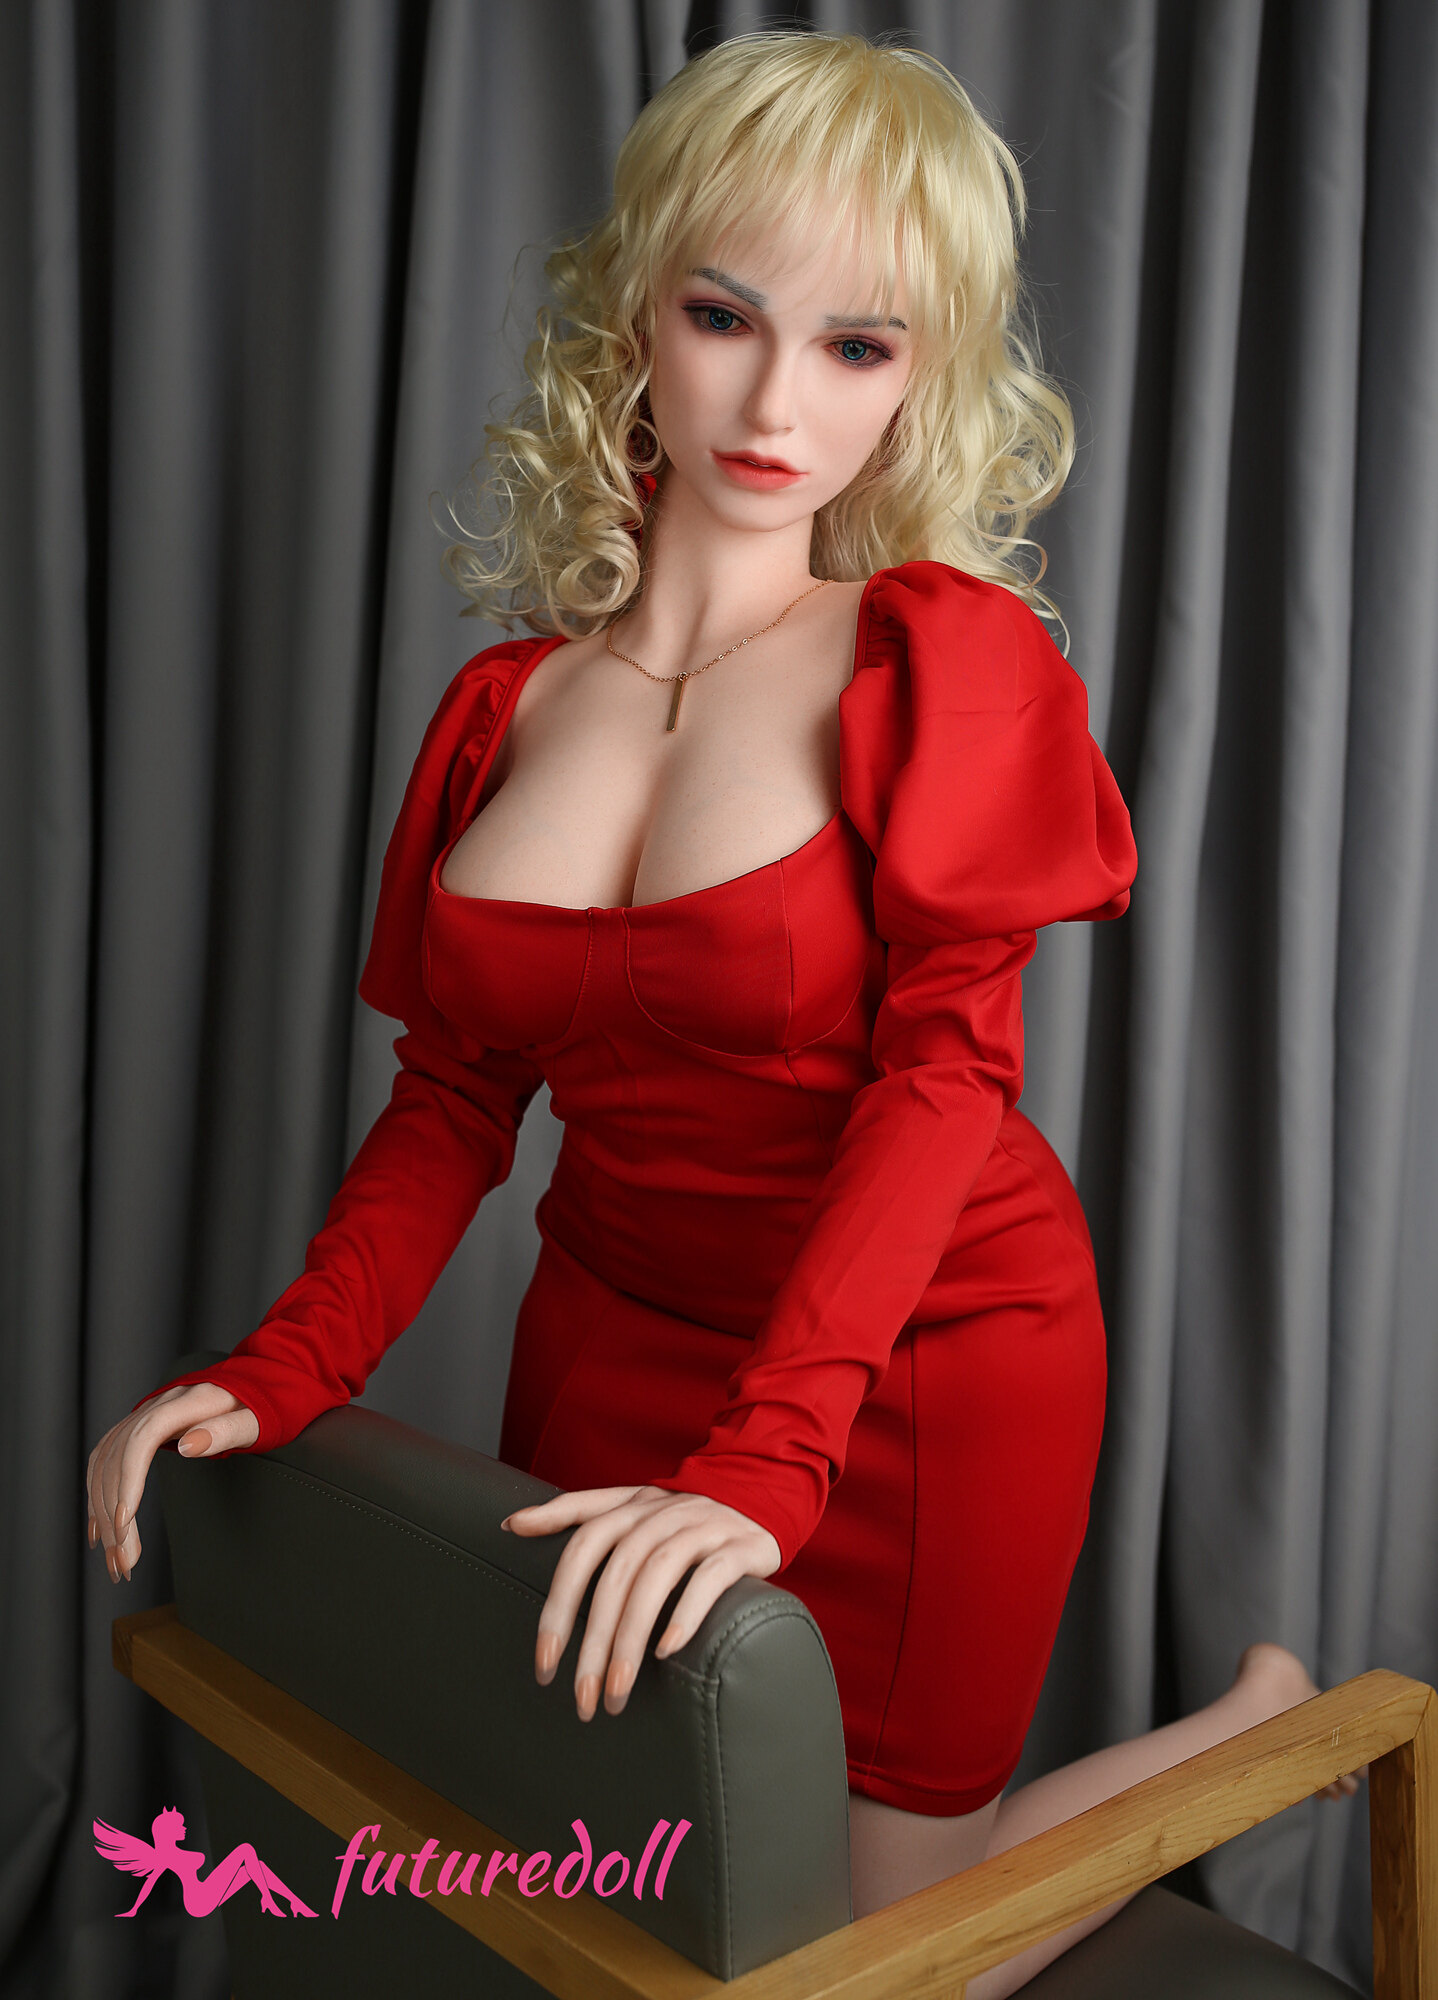 Life Size Silicone Women Wholesale Love Doll 163cm European Sexy Girl Real Live Sex Doll Silicone Sex Doll Life Size Silicone Women Wholesale Love Doll 163cm Silicone Sex Doll